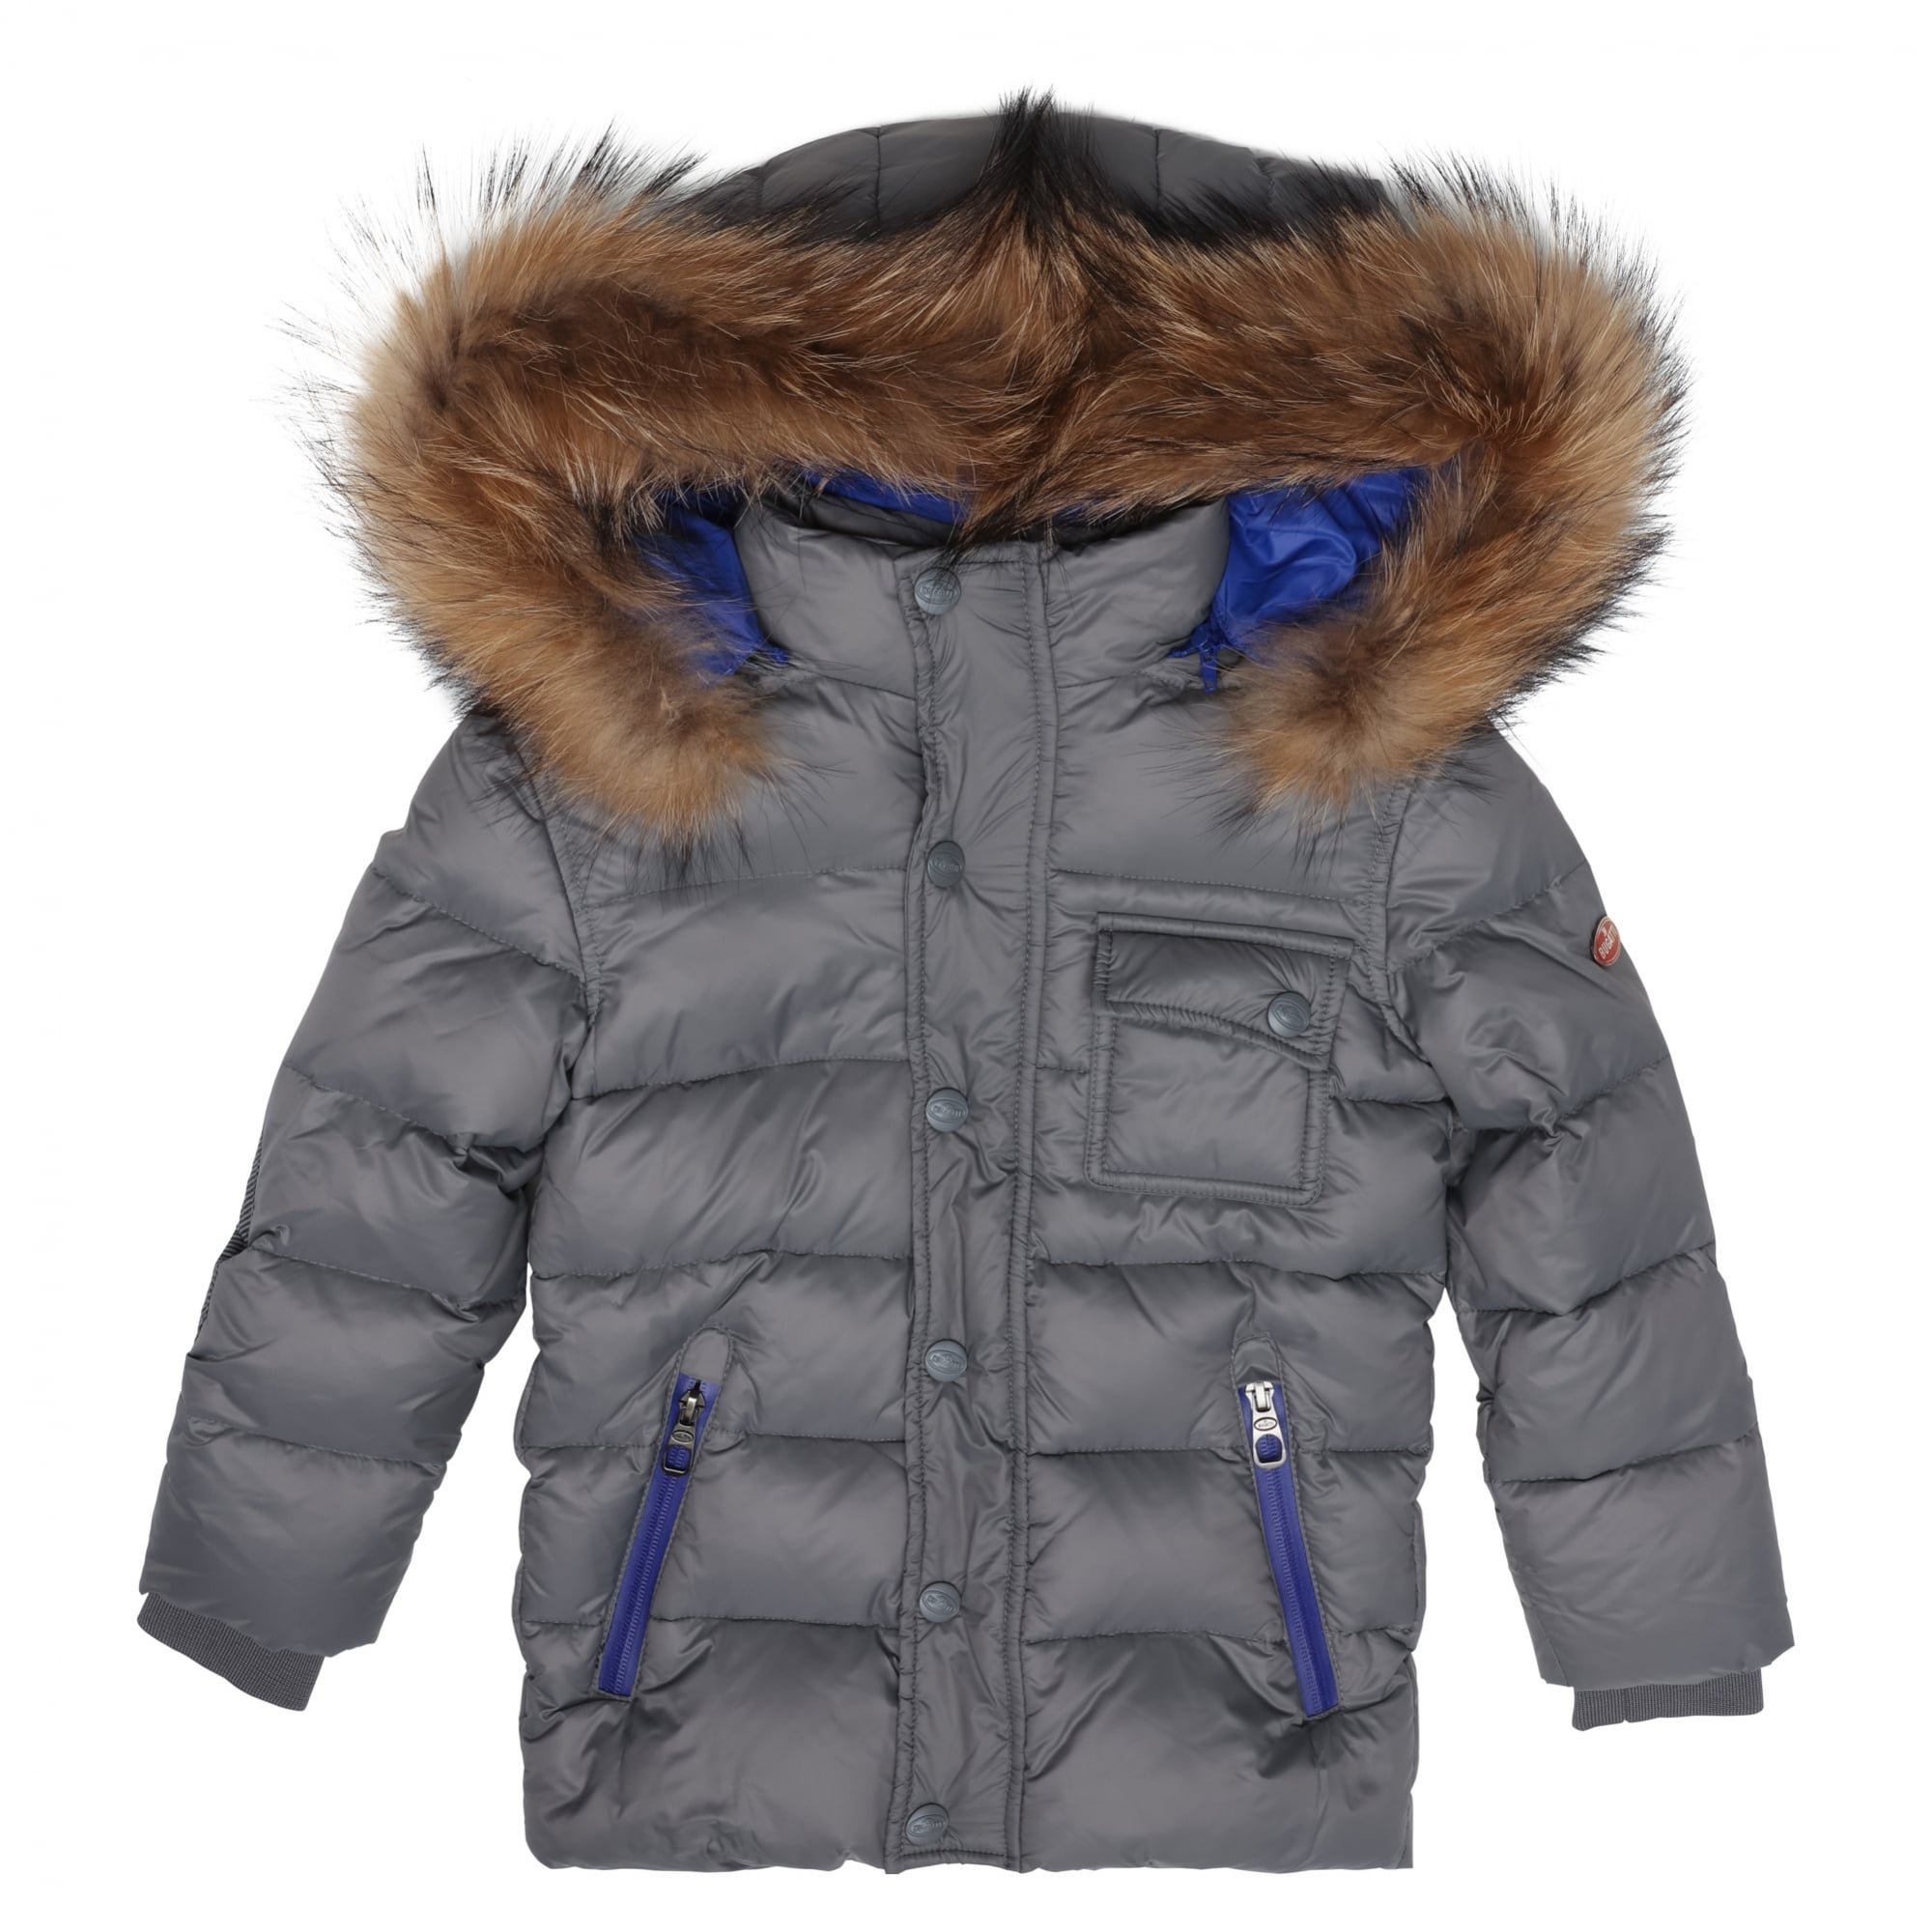 Bugatti Kids Jacket Christijan 6 yrs Steel Gray Steel Gray